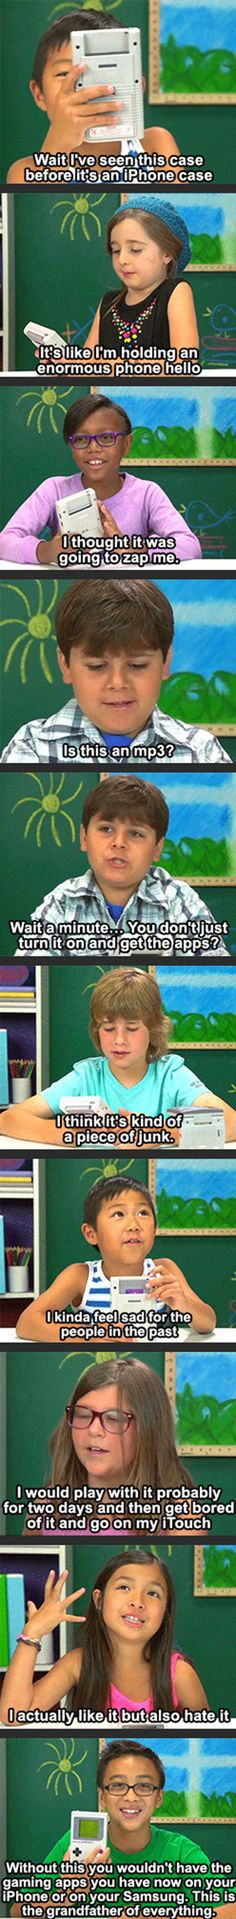 Kids are given Game Boys and say this...